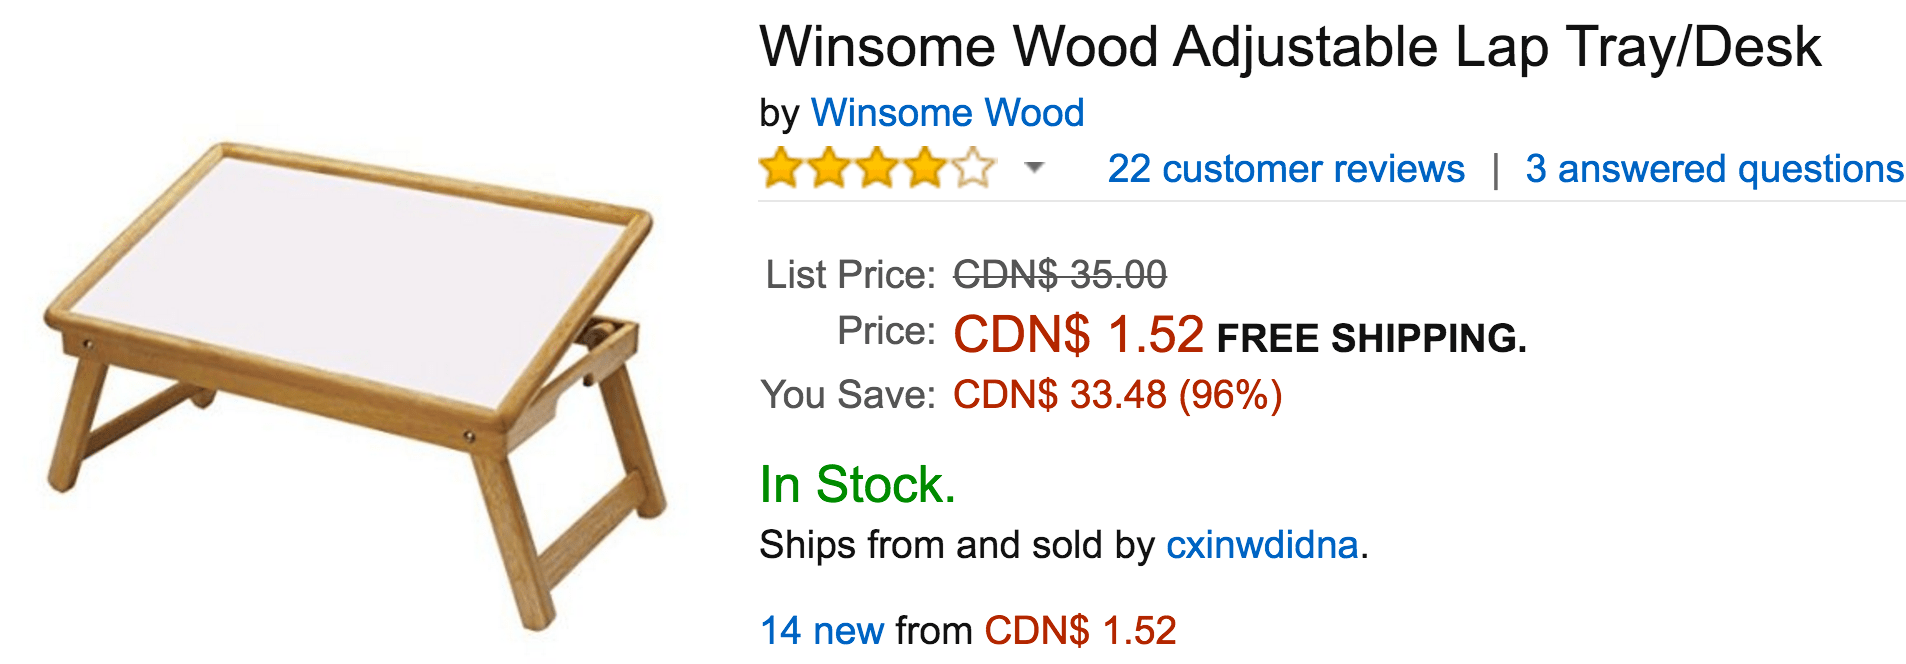 Amazon Canada Deals Of The Day: Save 96% On Winsome Wood Adjustable Lap Tray/Desk, 64% on Fallout 4 – PC & 50% on Little Tikes Deluxe 2-in-1 Cozy Roadster